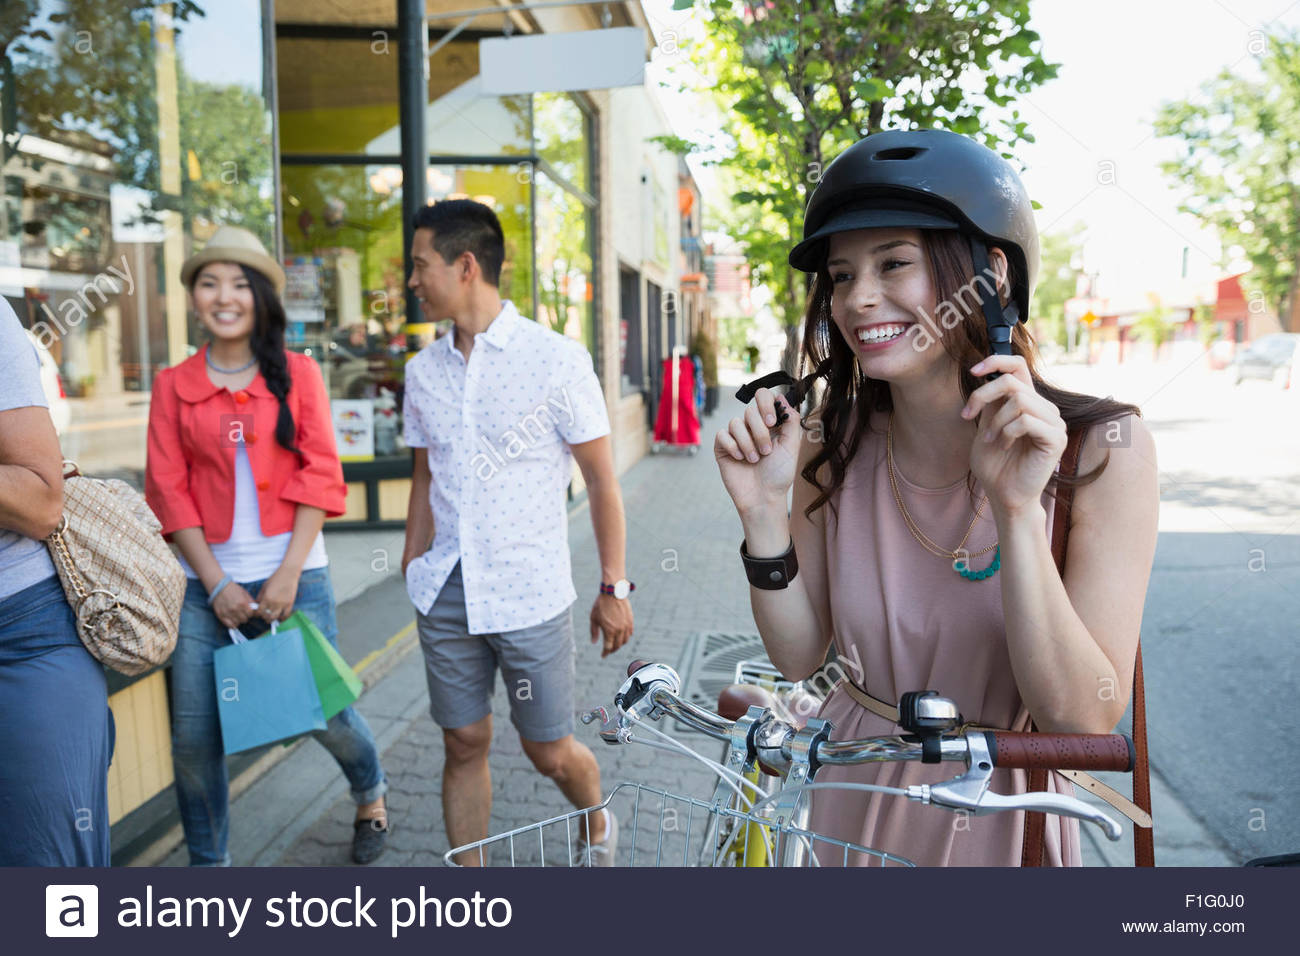 Smiling woman with bicycle putting on helmet Stock Photo